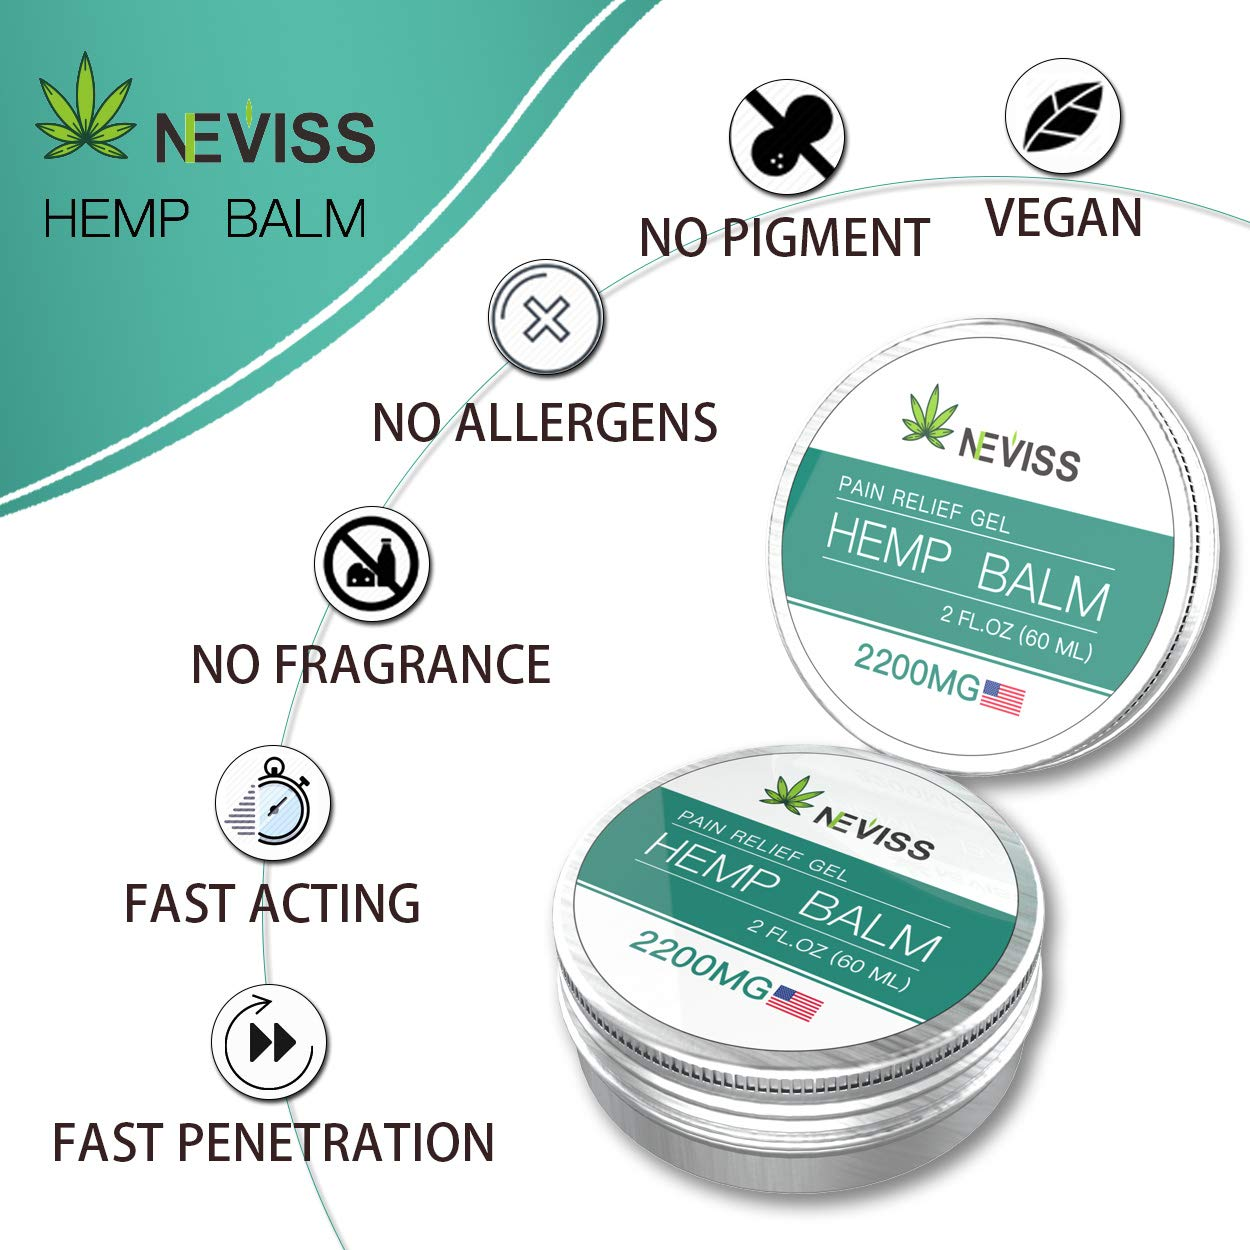 Pain Relief Hemp Balm 2200mg, 100% Natural Hemp Ointment for Knee, Joint & Back Pain, Premium Hemp Balm for Inflammation & Sore Muscles - Made in USA